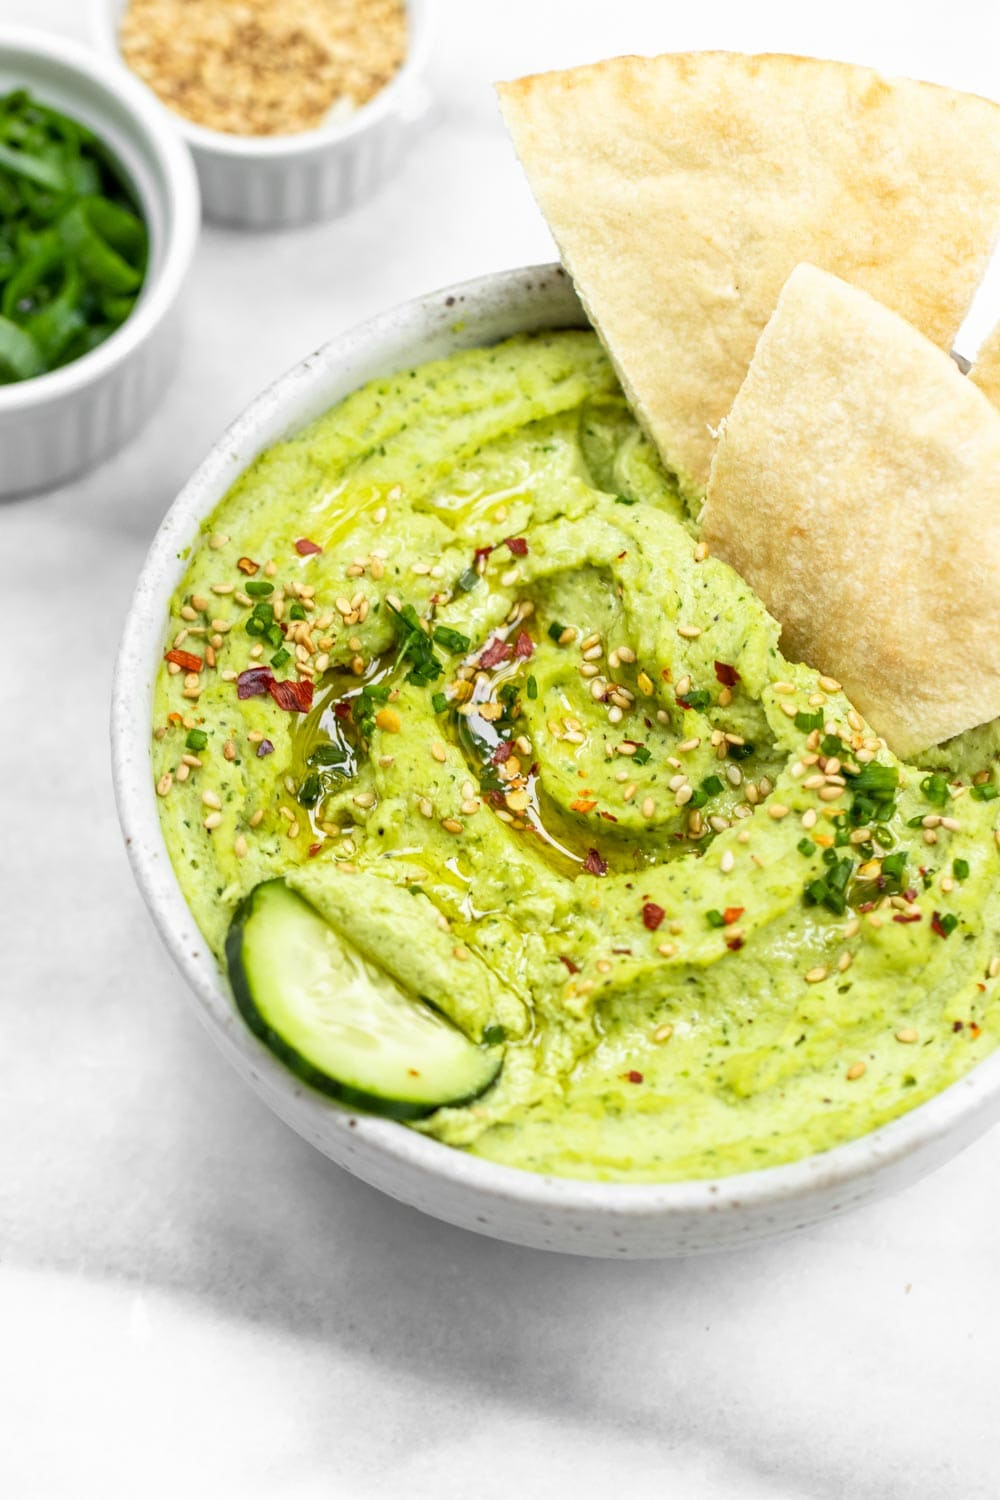 Angled view on the hummus with cucumber and pita in the bowl.